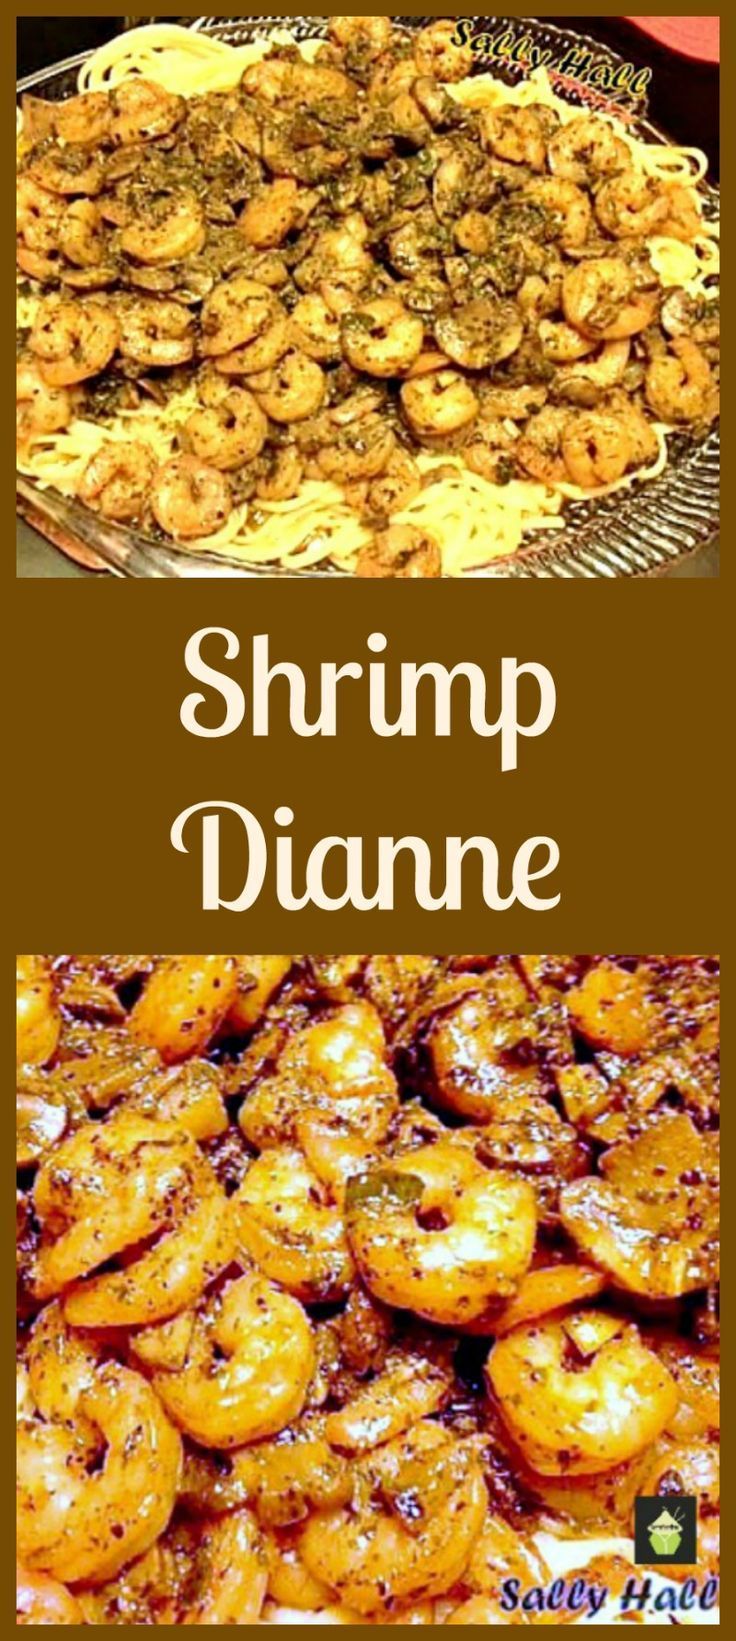 Shrimp Dianne - A wonderful flavored dish, great served as a main on a bed of Angel Hair pasta or as a side with some warm crusty bread!